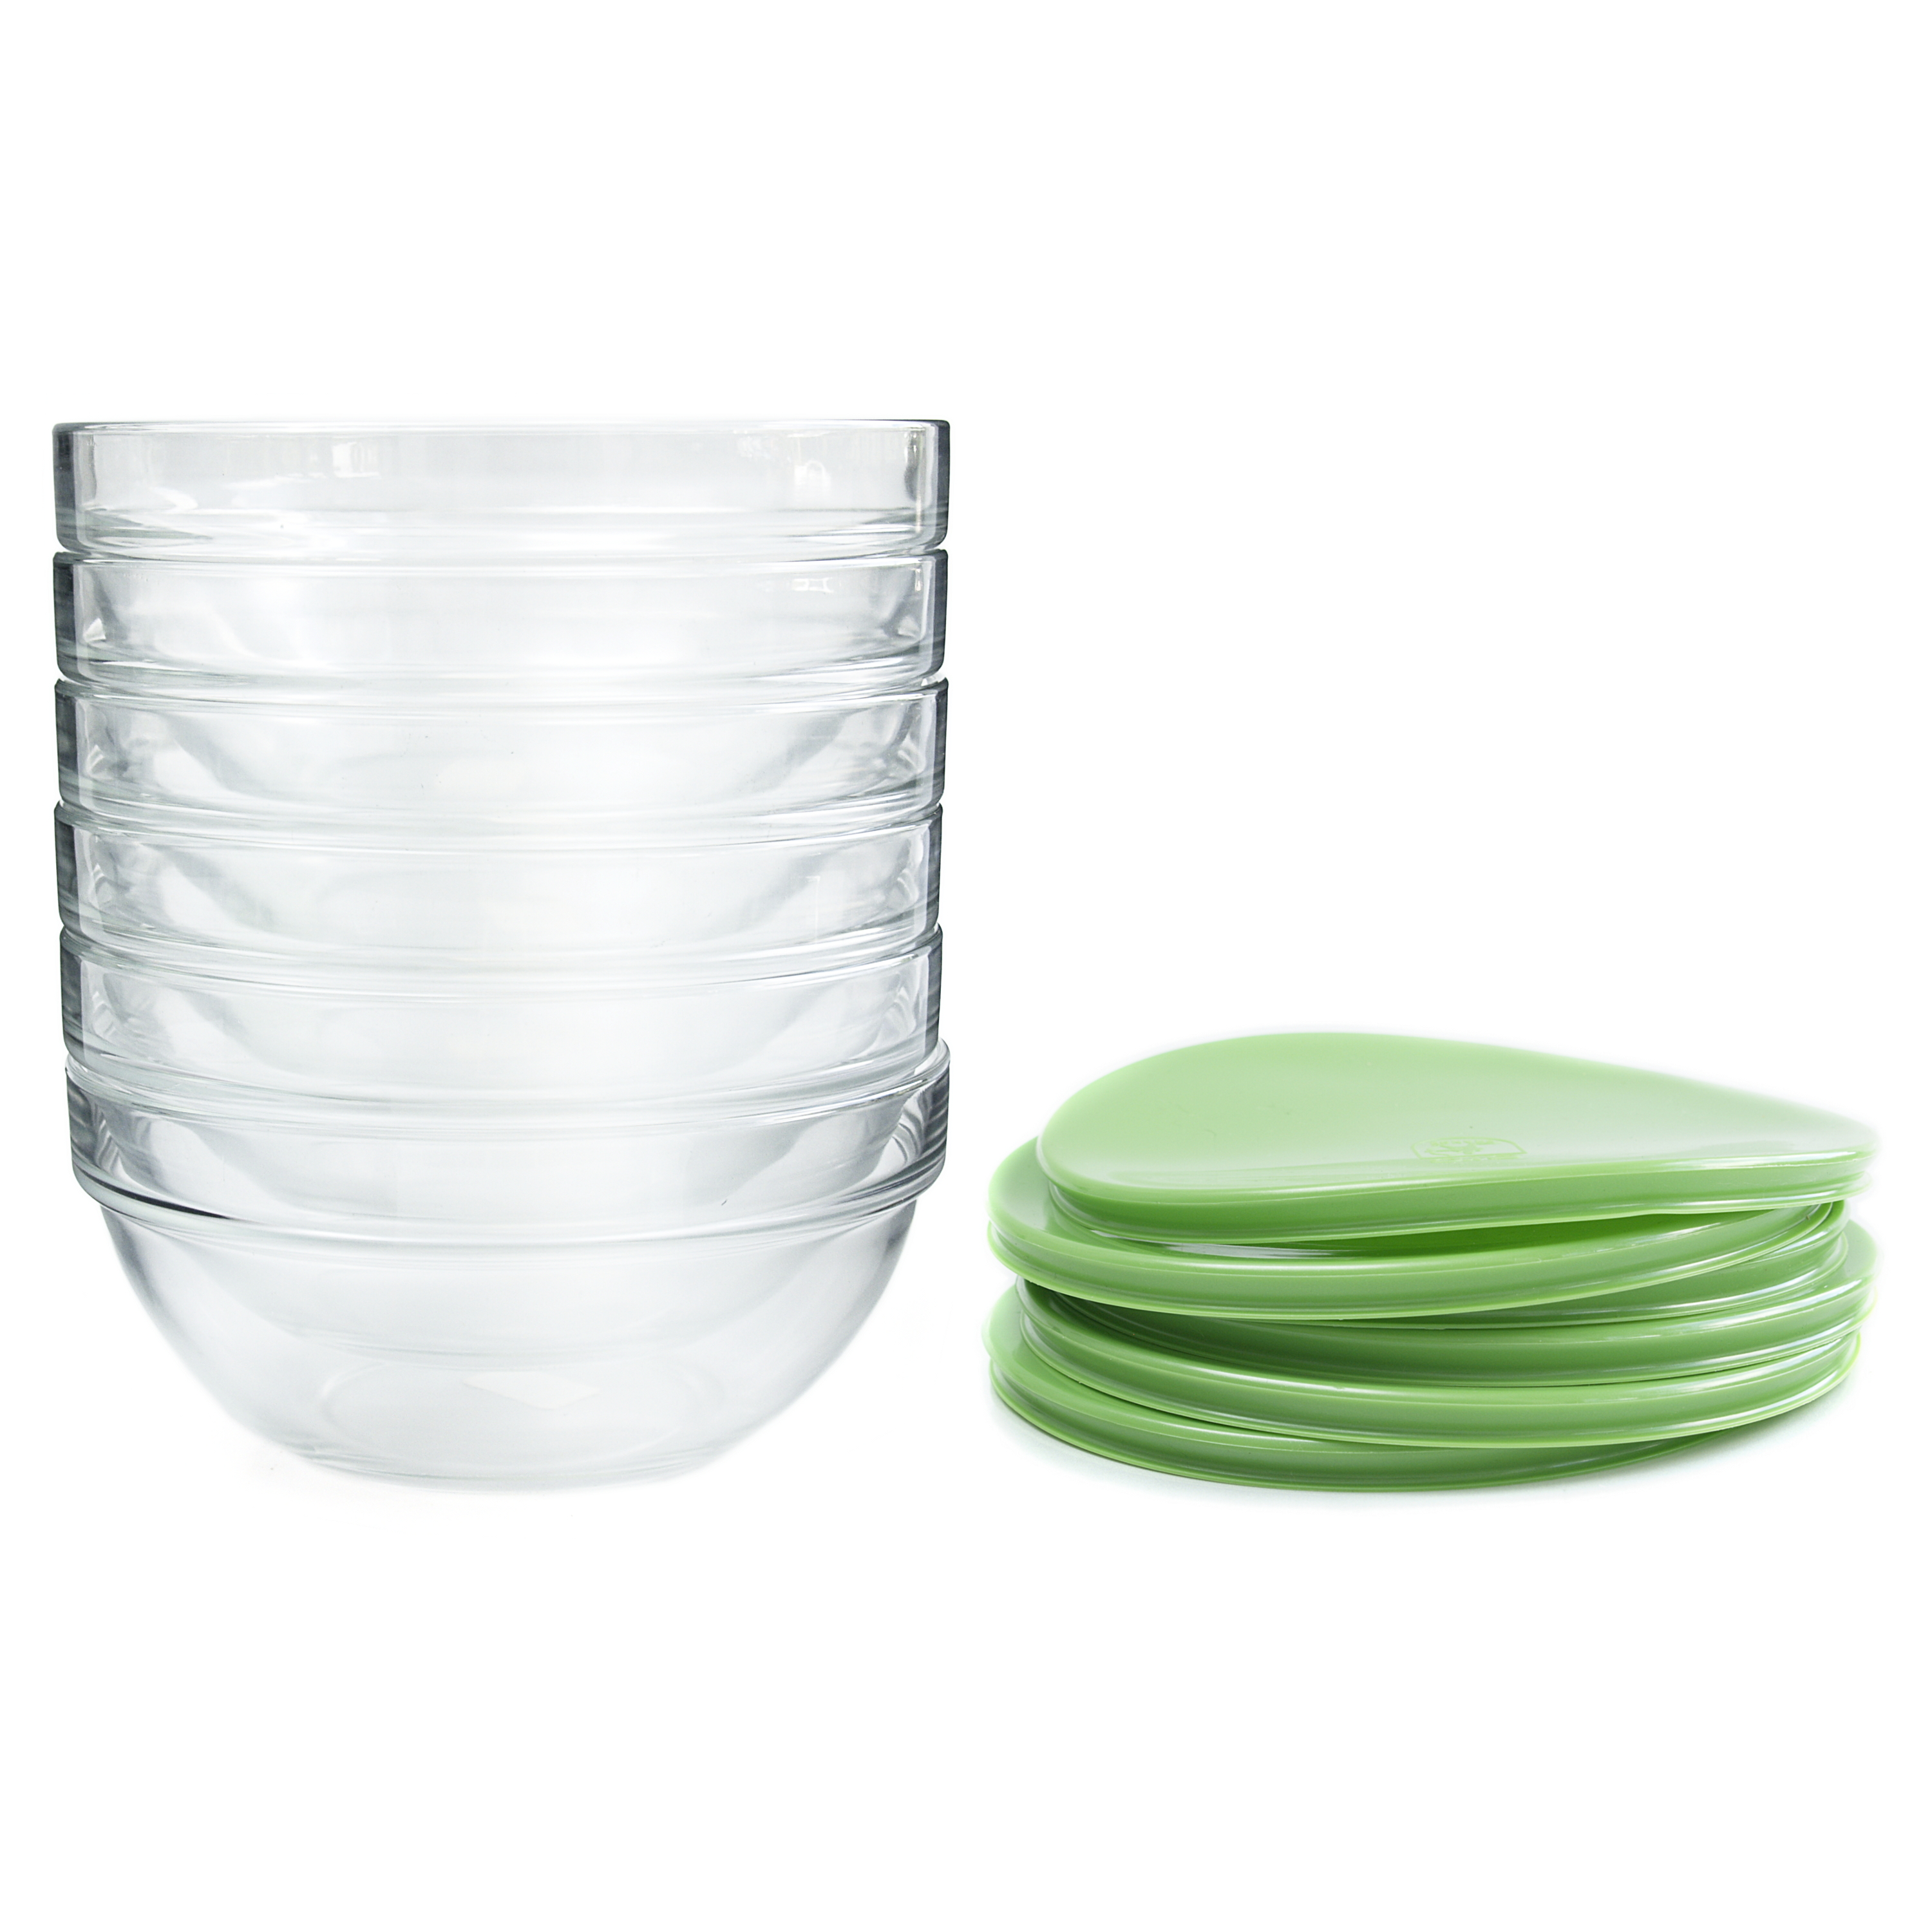 G Air Tight Glass Container